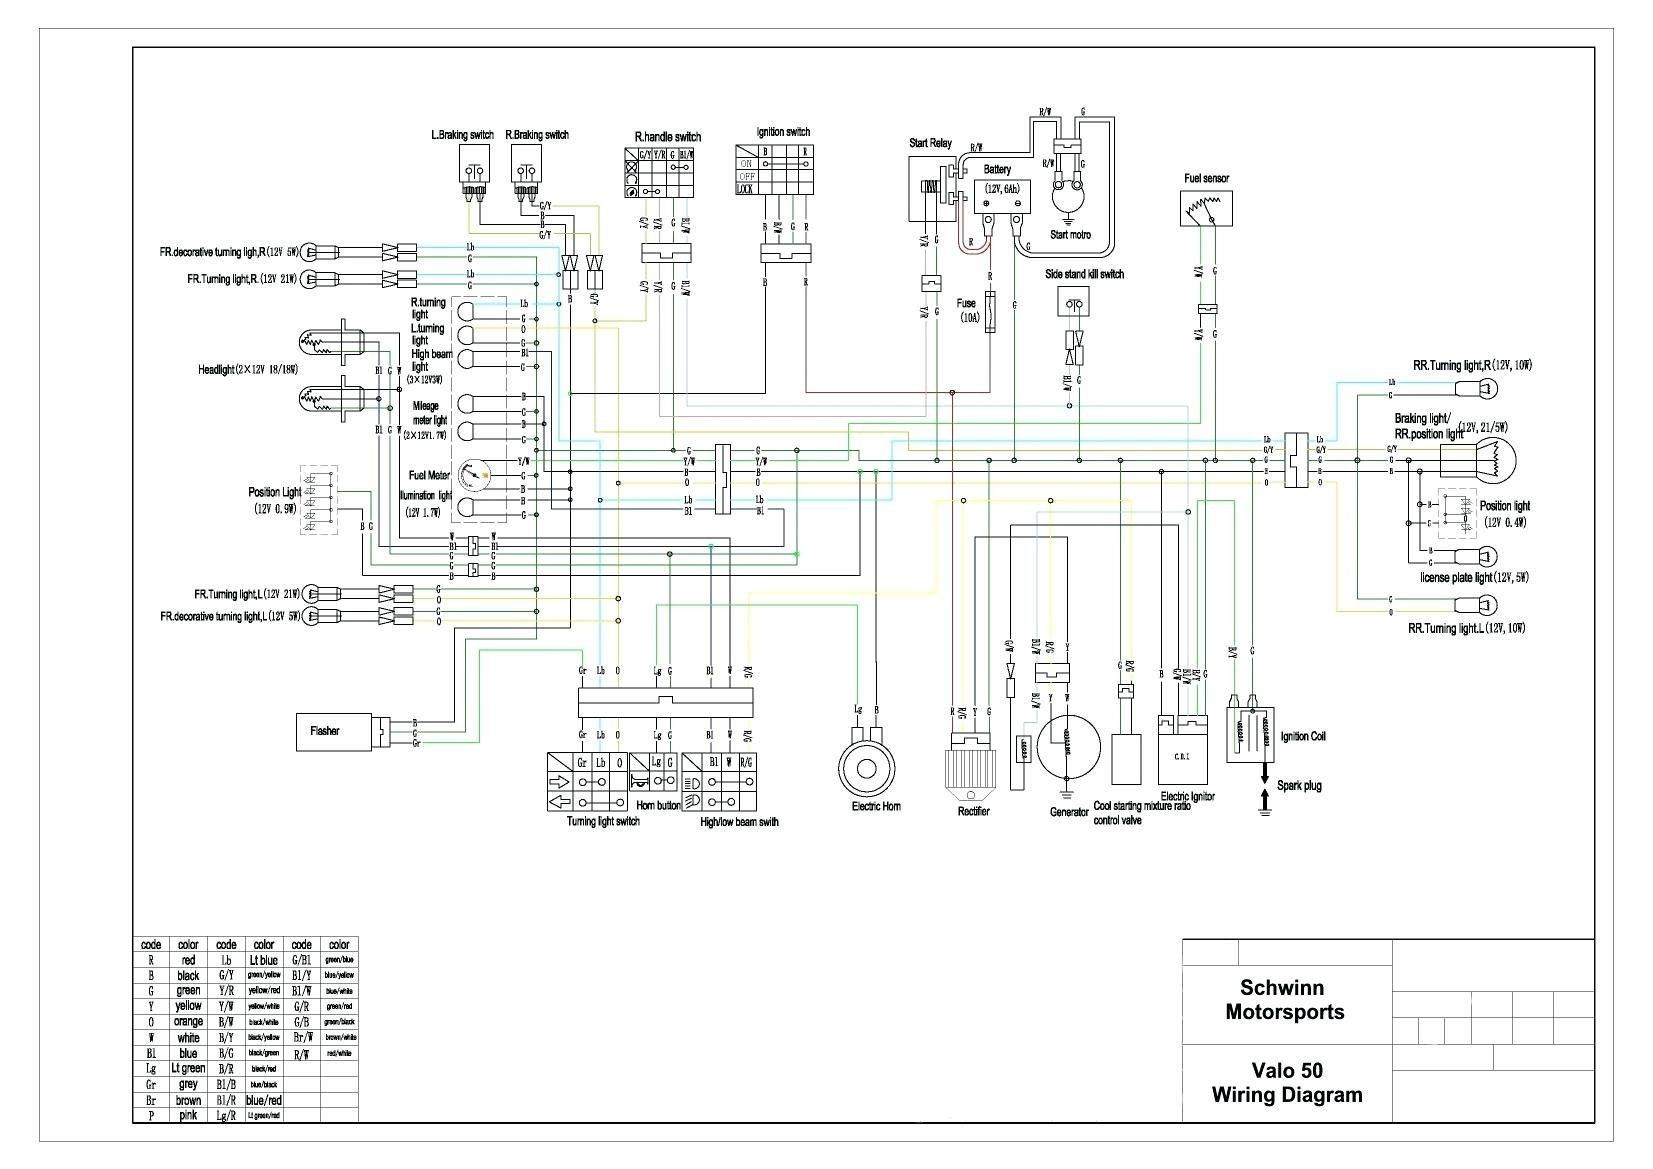 Wiring Diagram Of Electric Iron